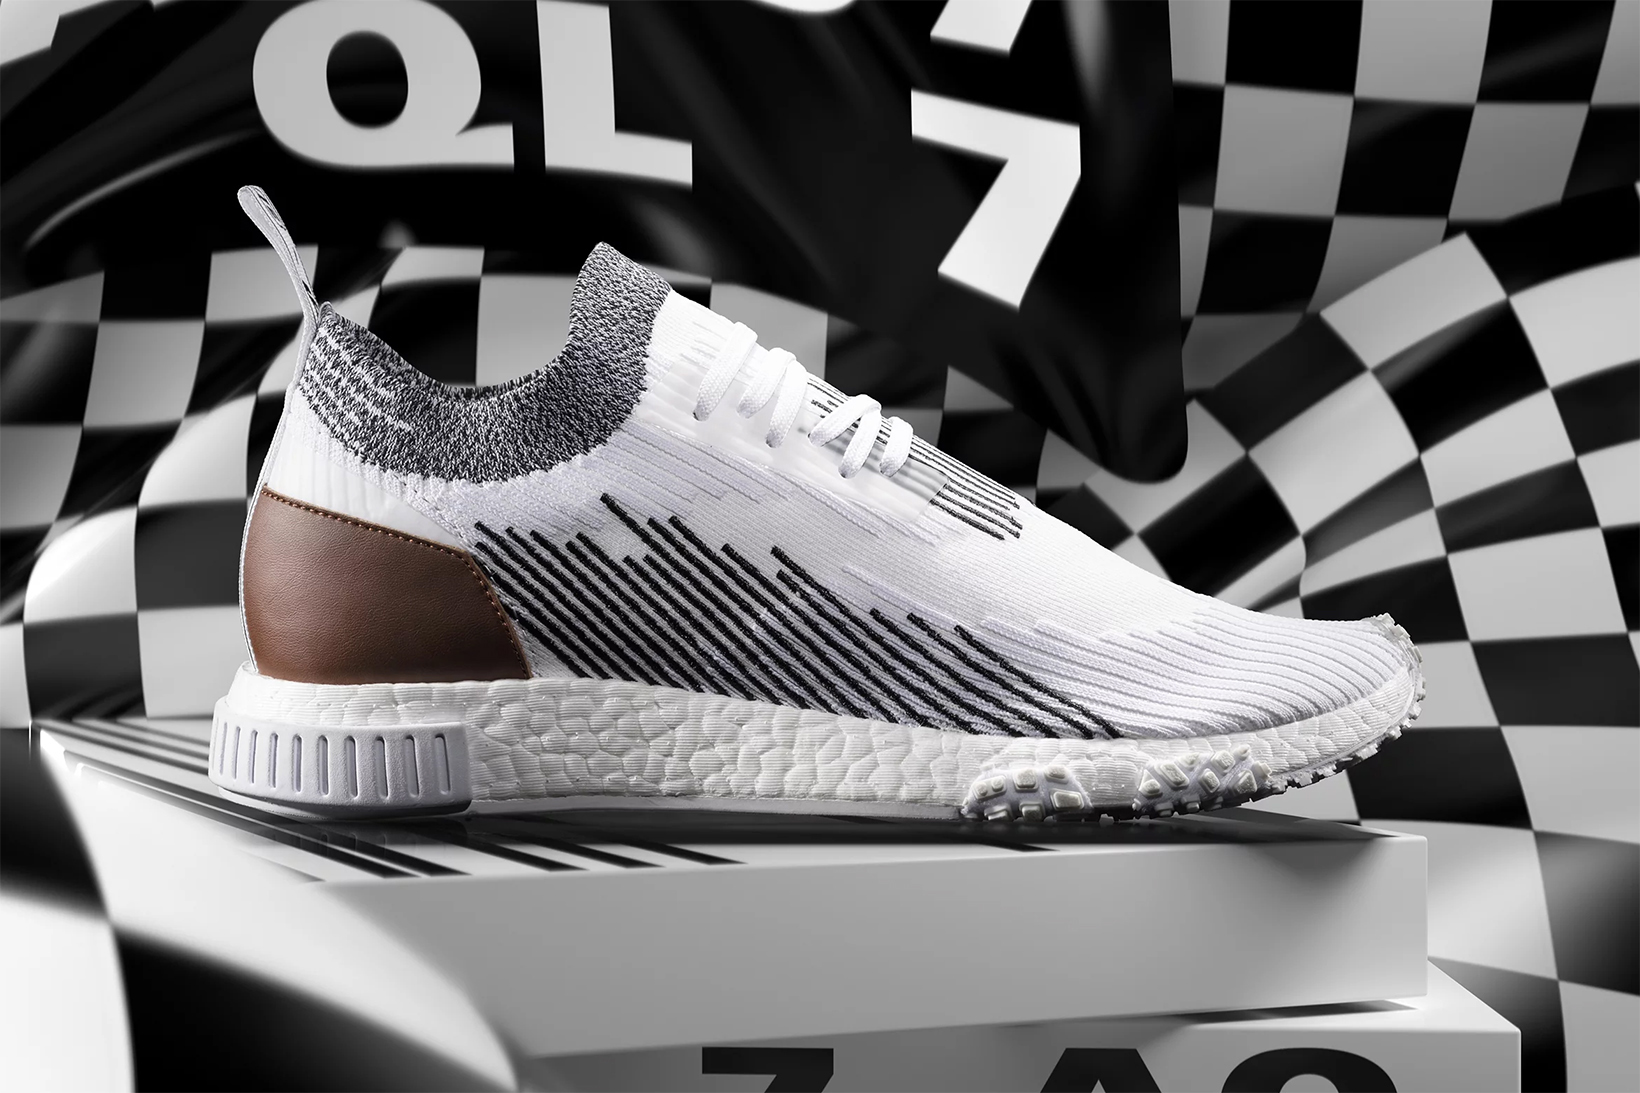 adidas Originals NMD Racer Leather Release Date Whitaker Car Club Heel Tab Black White Stripes Monochrome END. Information Details